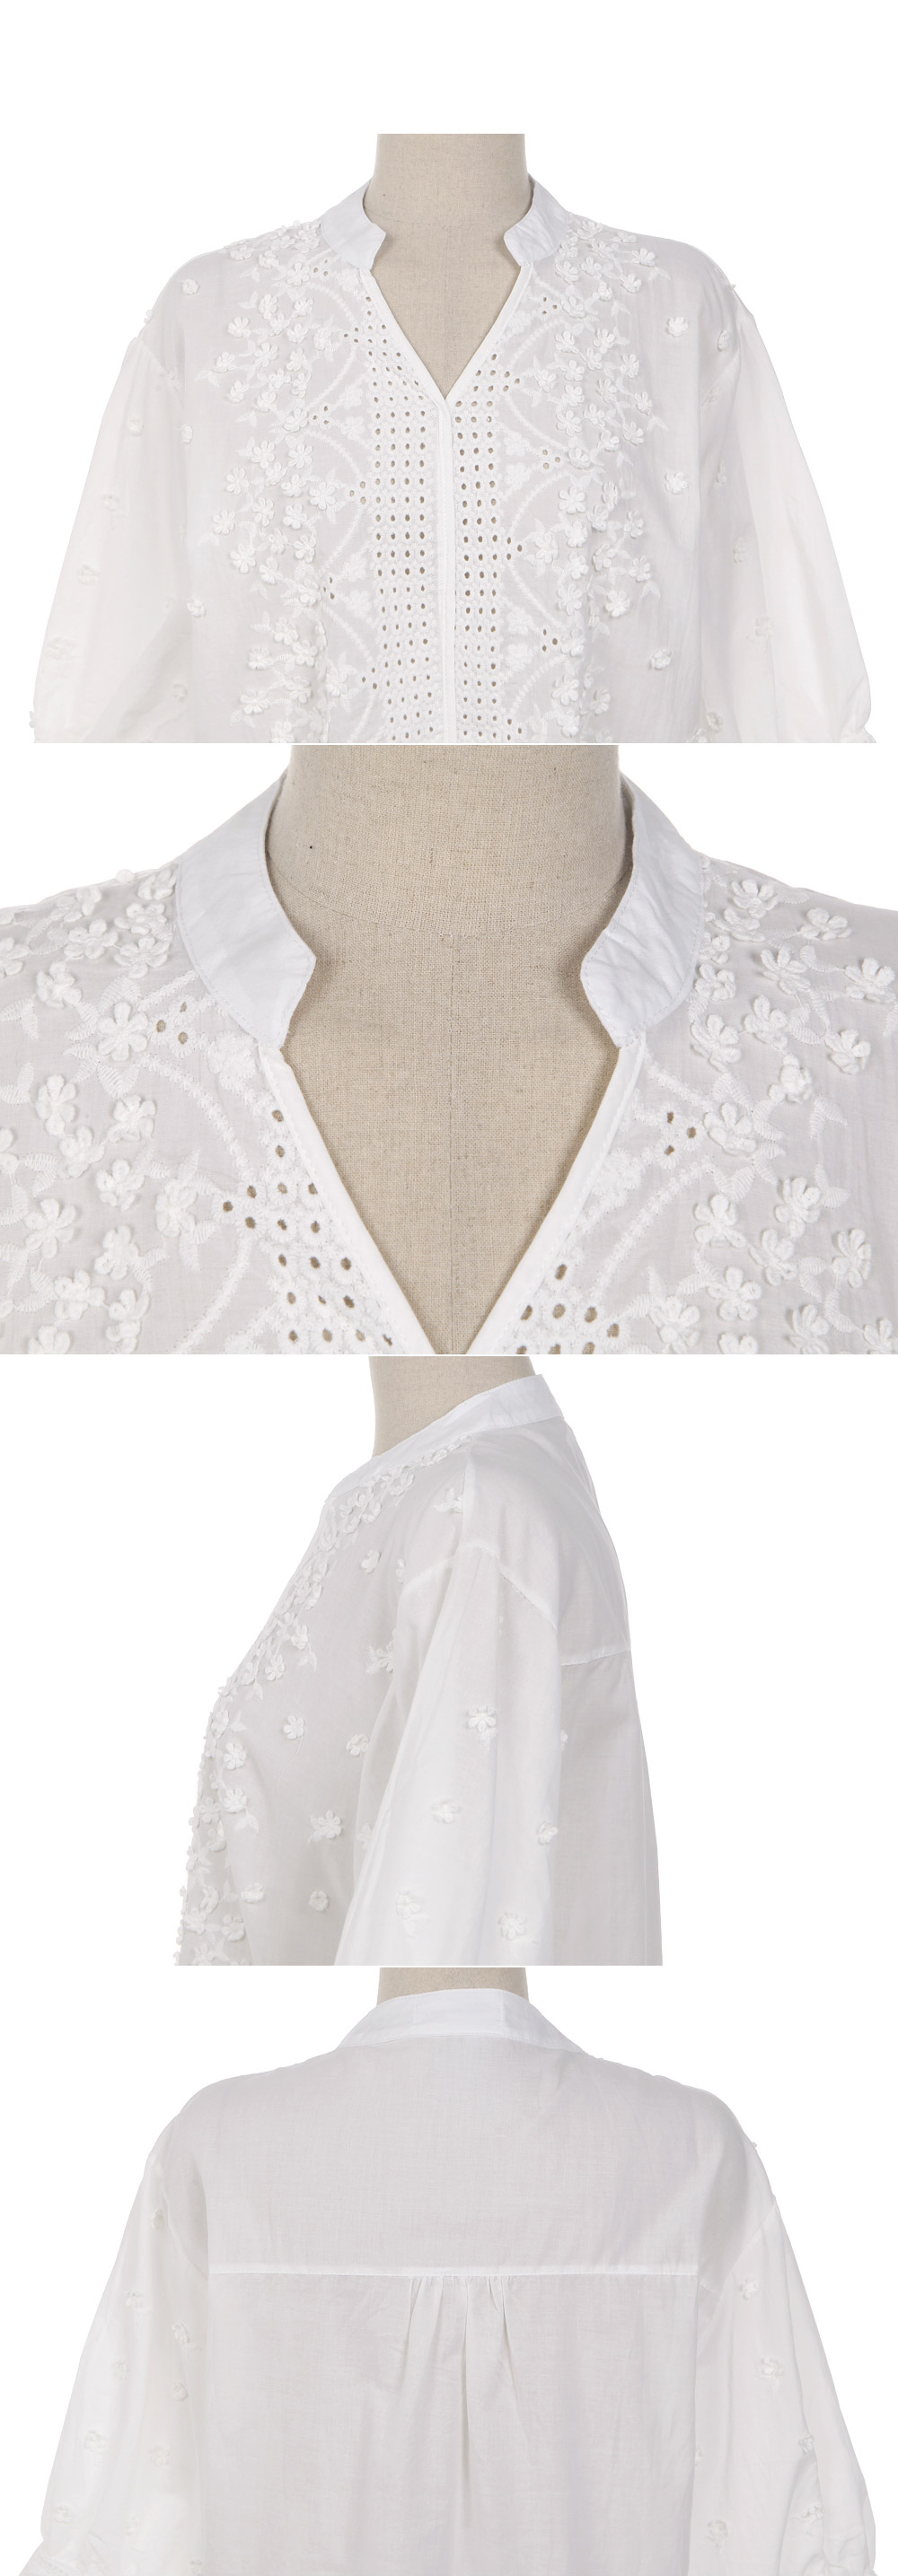 Embroidery Hollow Out V-neck Floral Office White Shirt